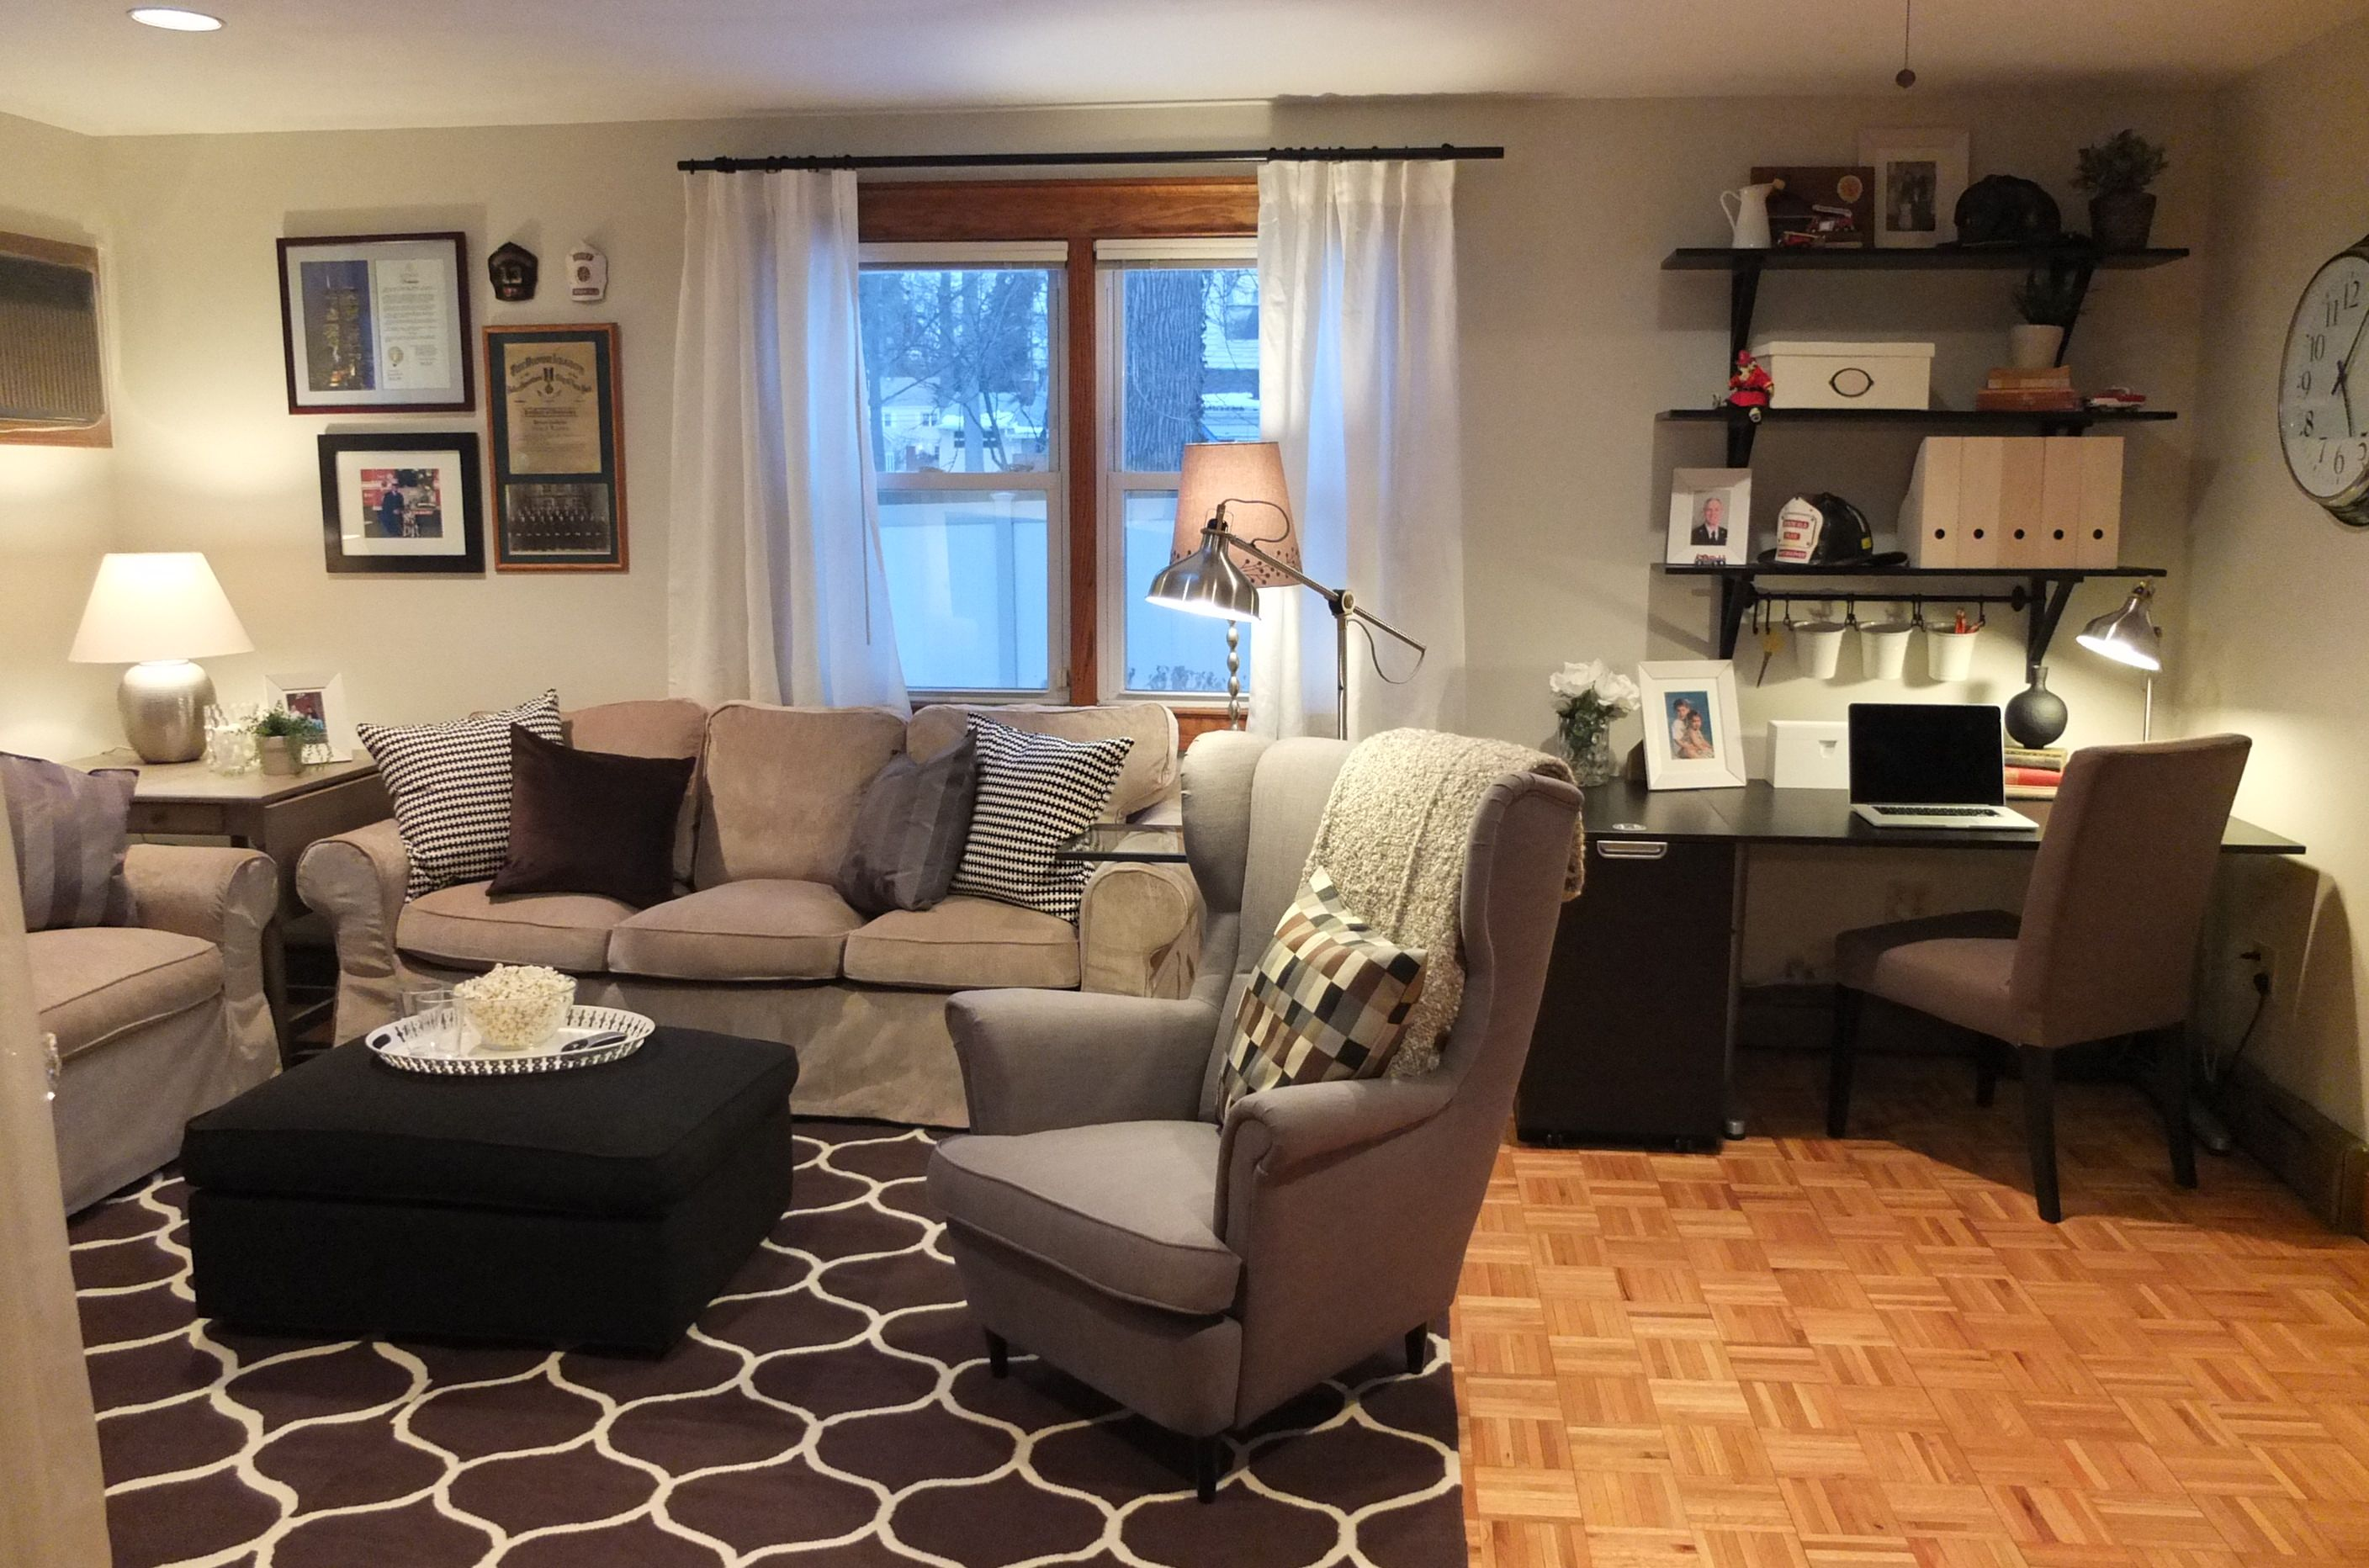 check out how the ikea home tour squad turned an underused back room into a true family room in this makeover - Desk In Living Room